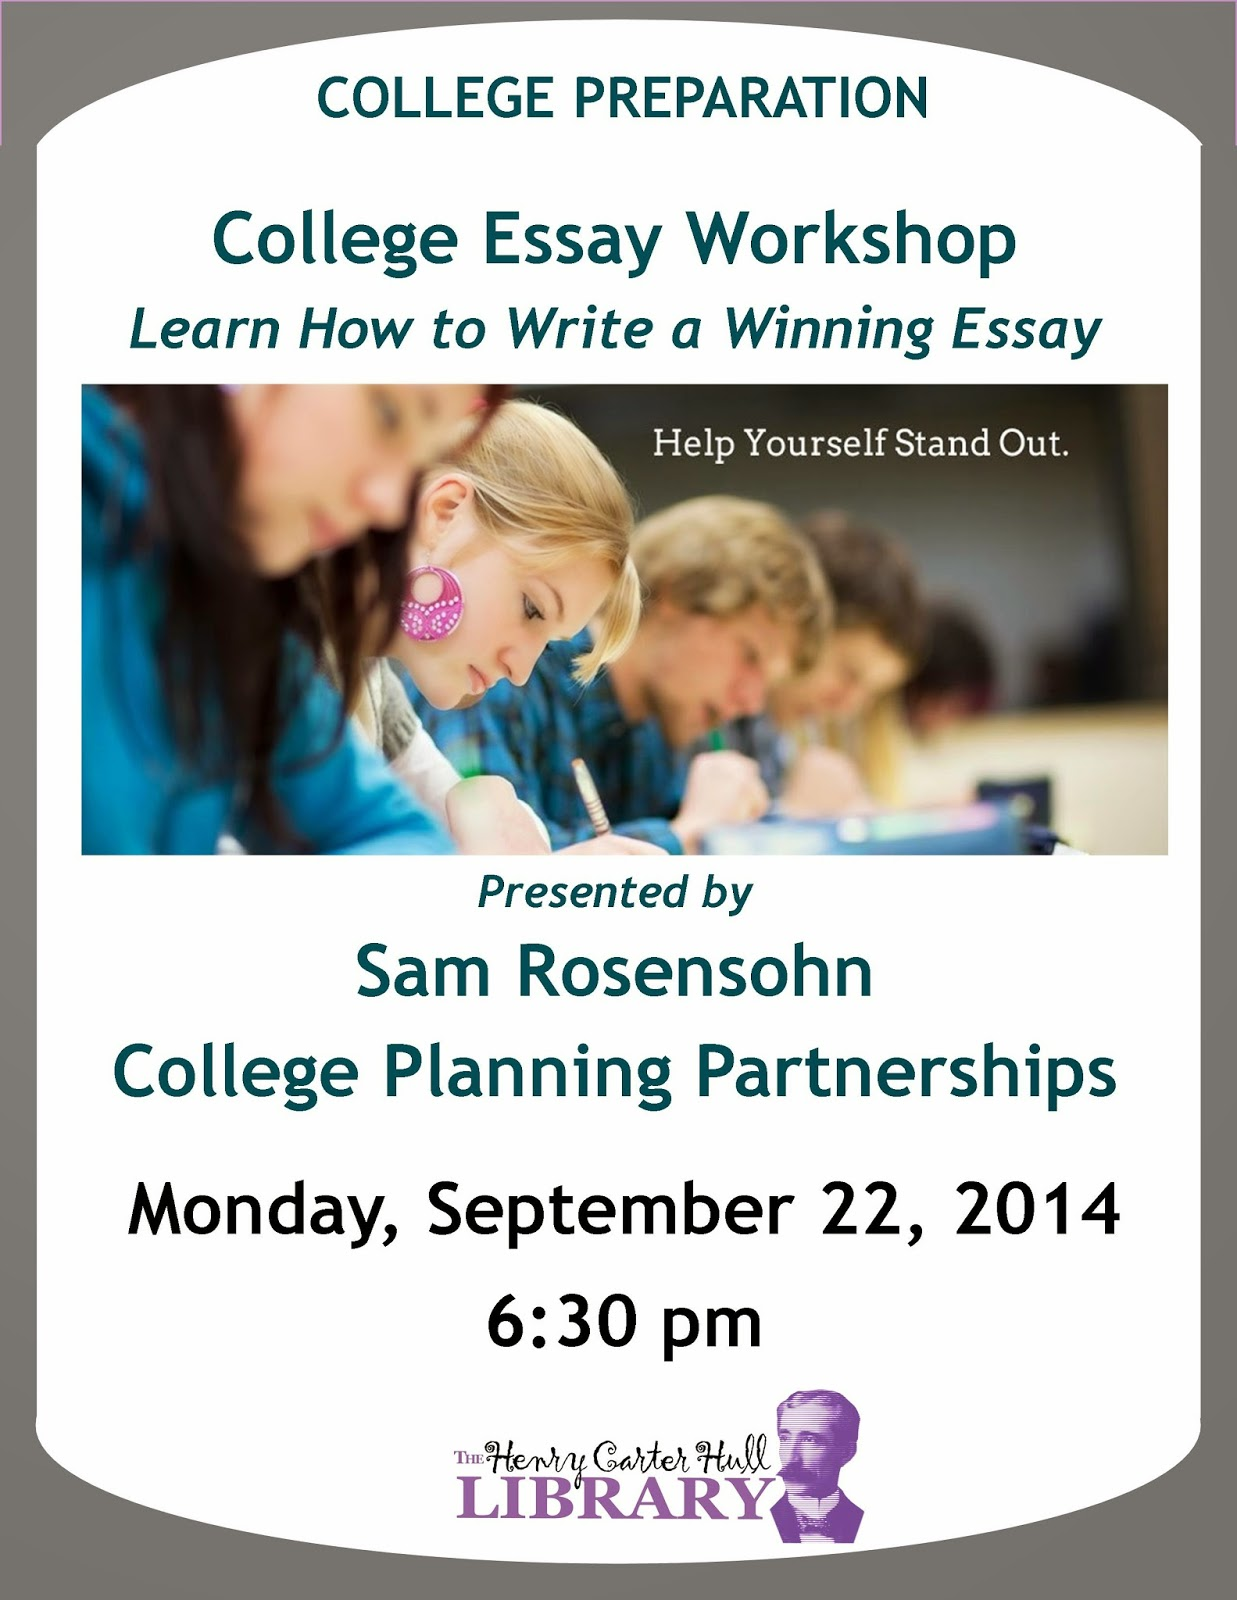 essay on college library essay english essay writer essay library  hch library news clinton ct learn how to write a winning college essay sam rosensohn of